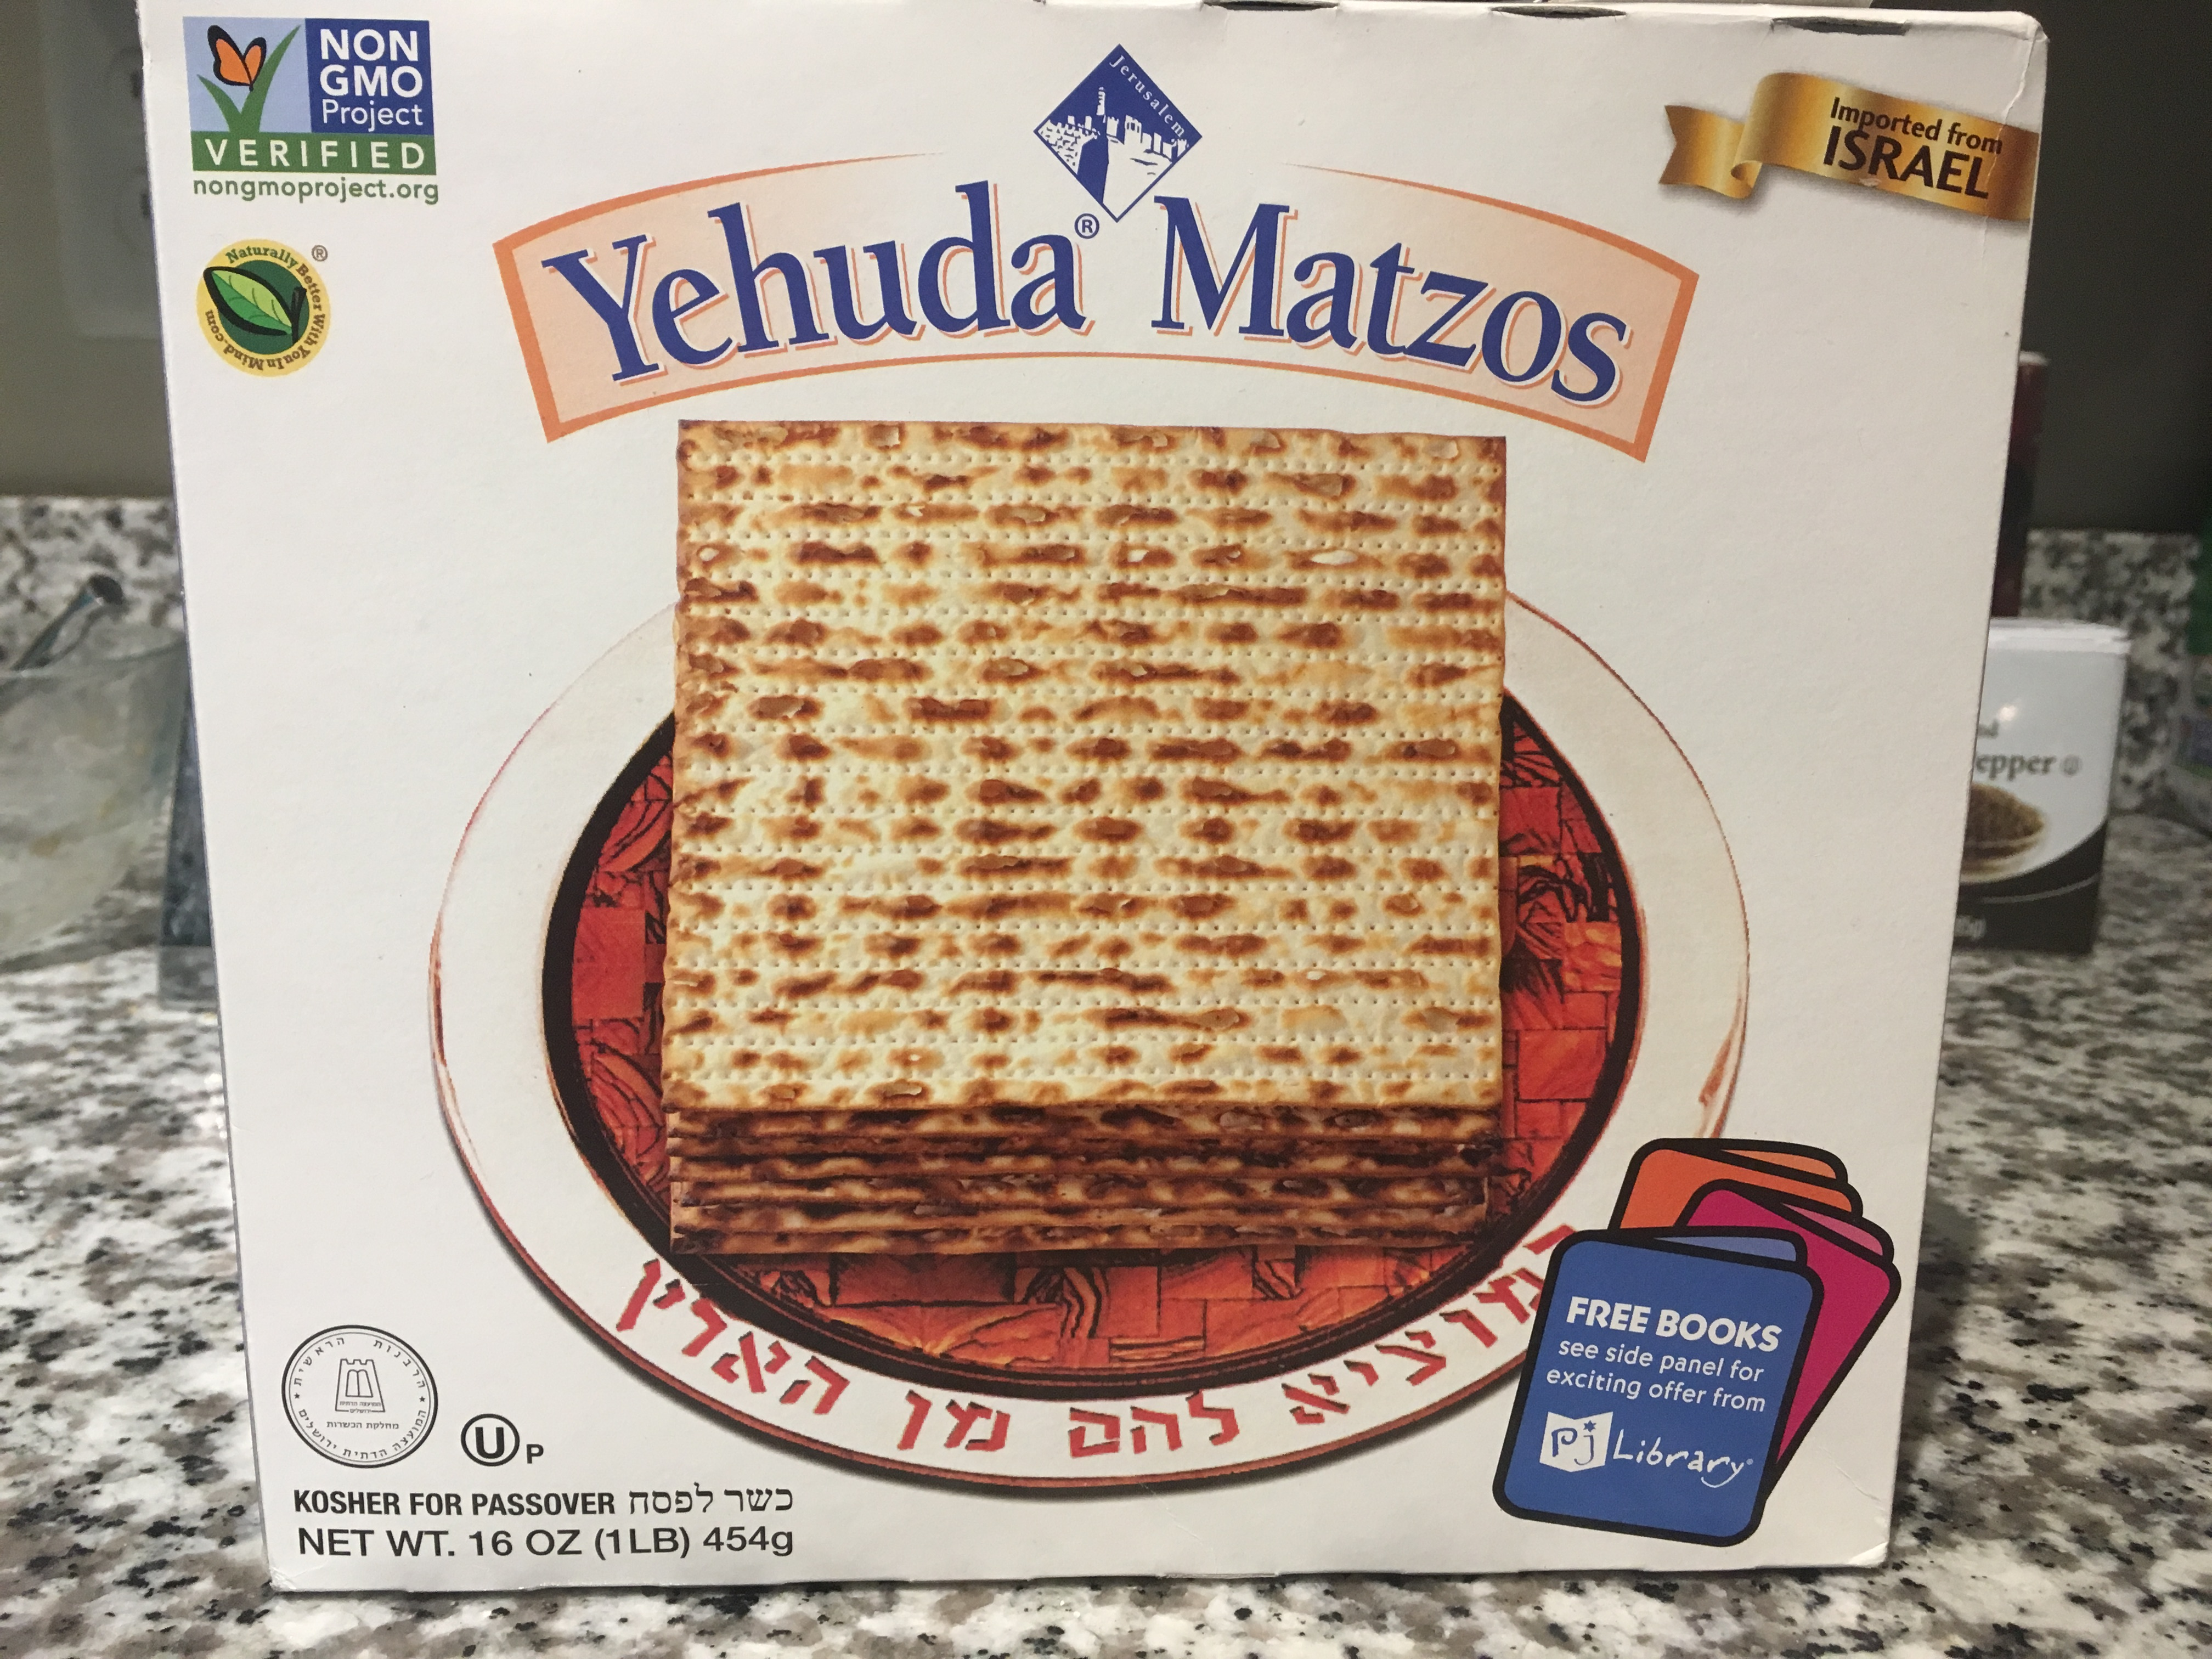 Mitzpeh | Many ways to celebrate Passover on campus